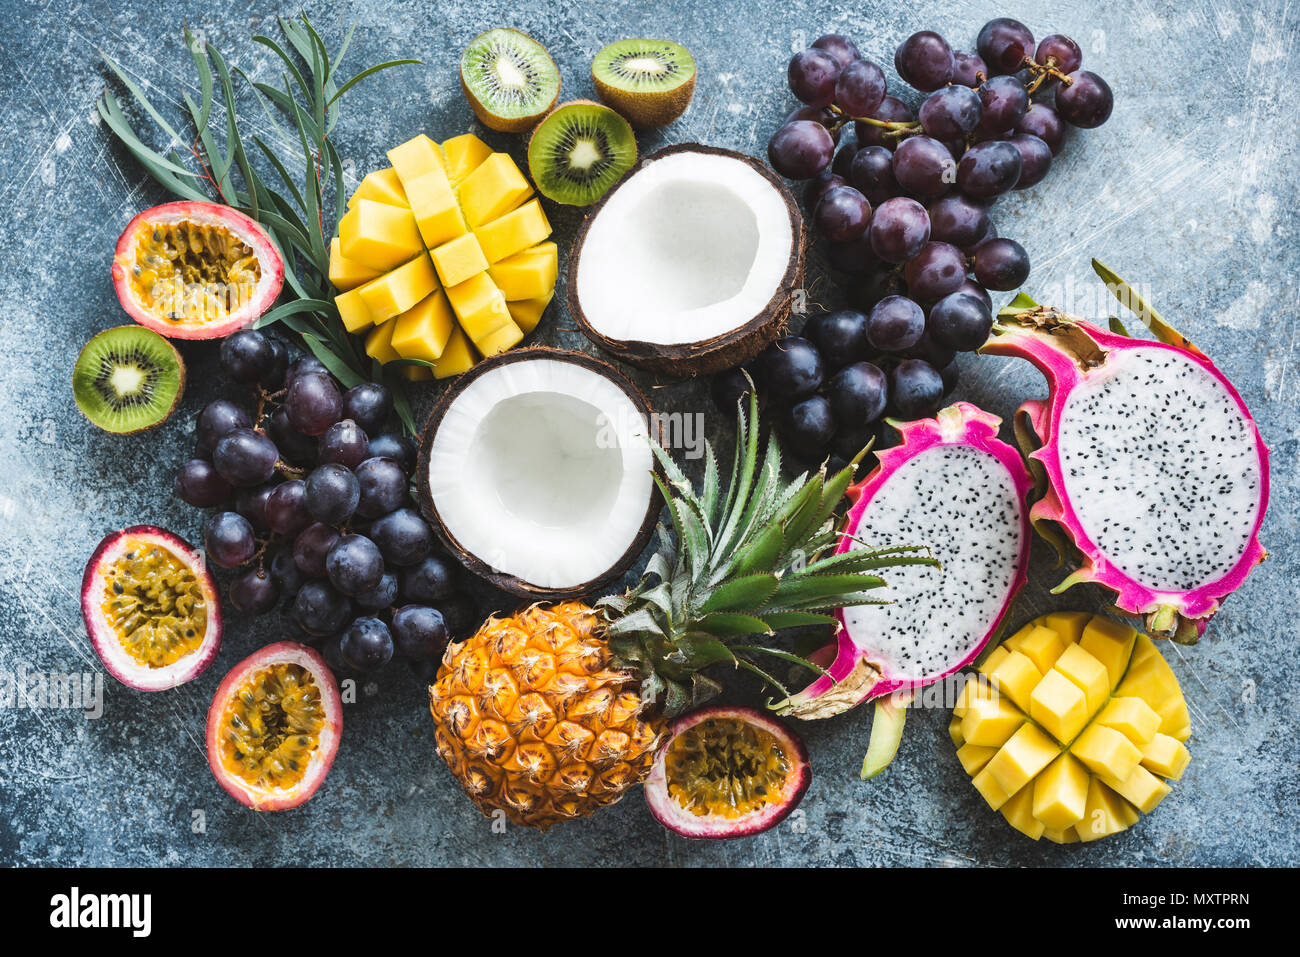 Assortment of exotic tropical fruits, top view. Passionfruit, dragonfruit, mango, pineapple, kiwi, grapes and coconut. Fresh food background. Healthy  - Stock Image